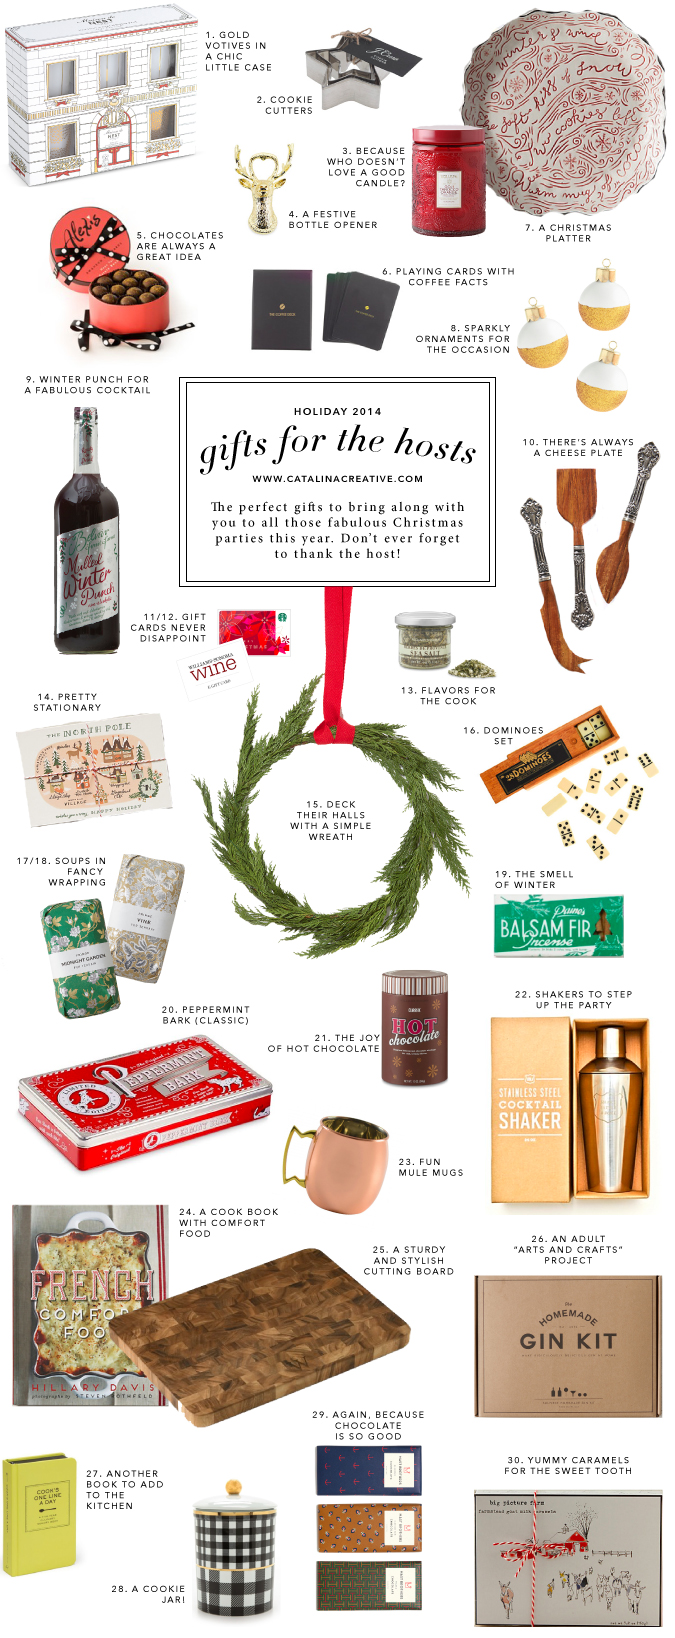 Catalina Creative Holiday Gift Guide 2014 - Hosts